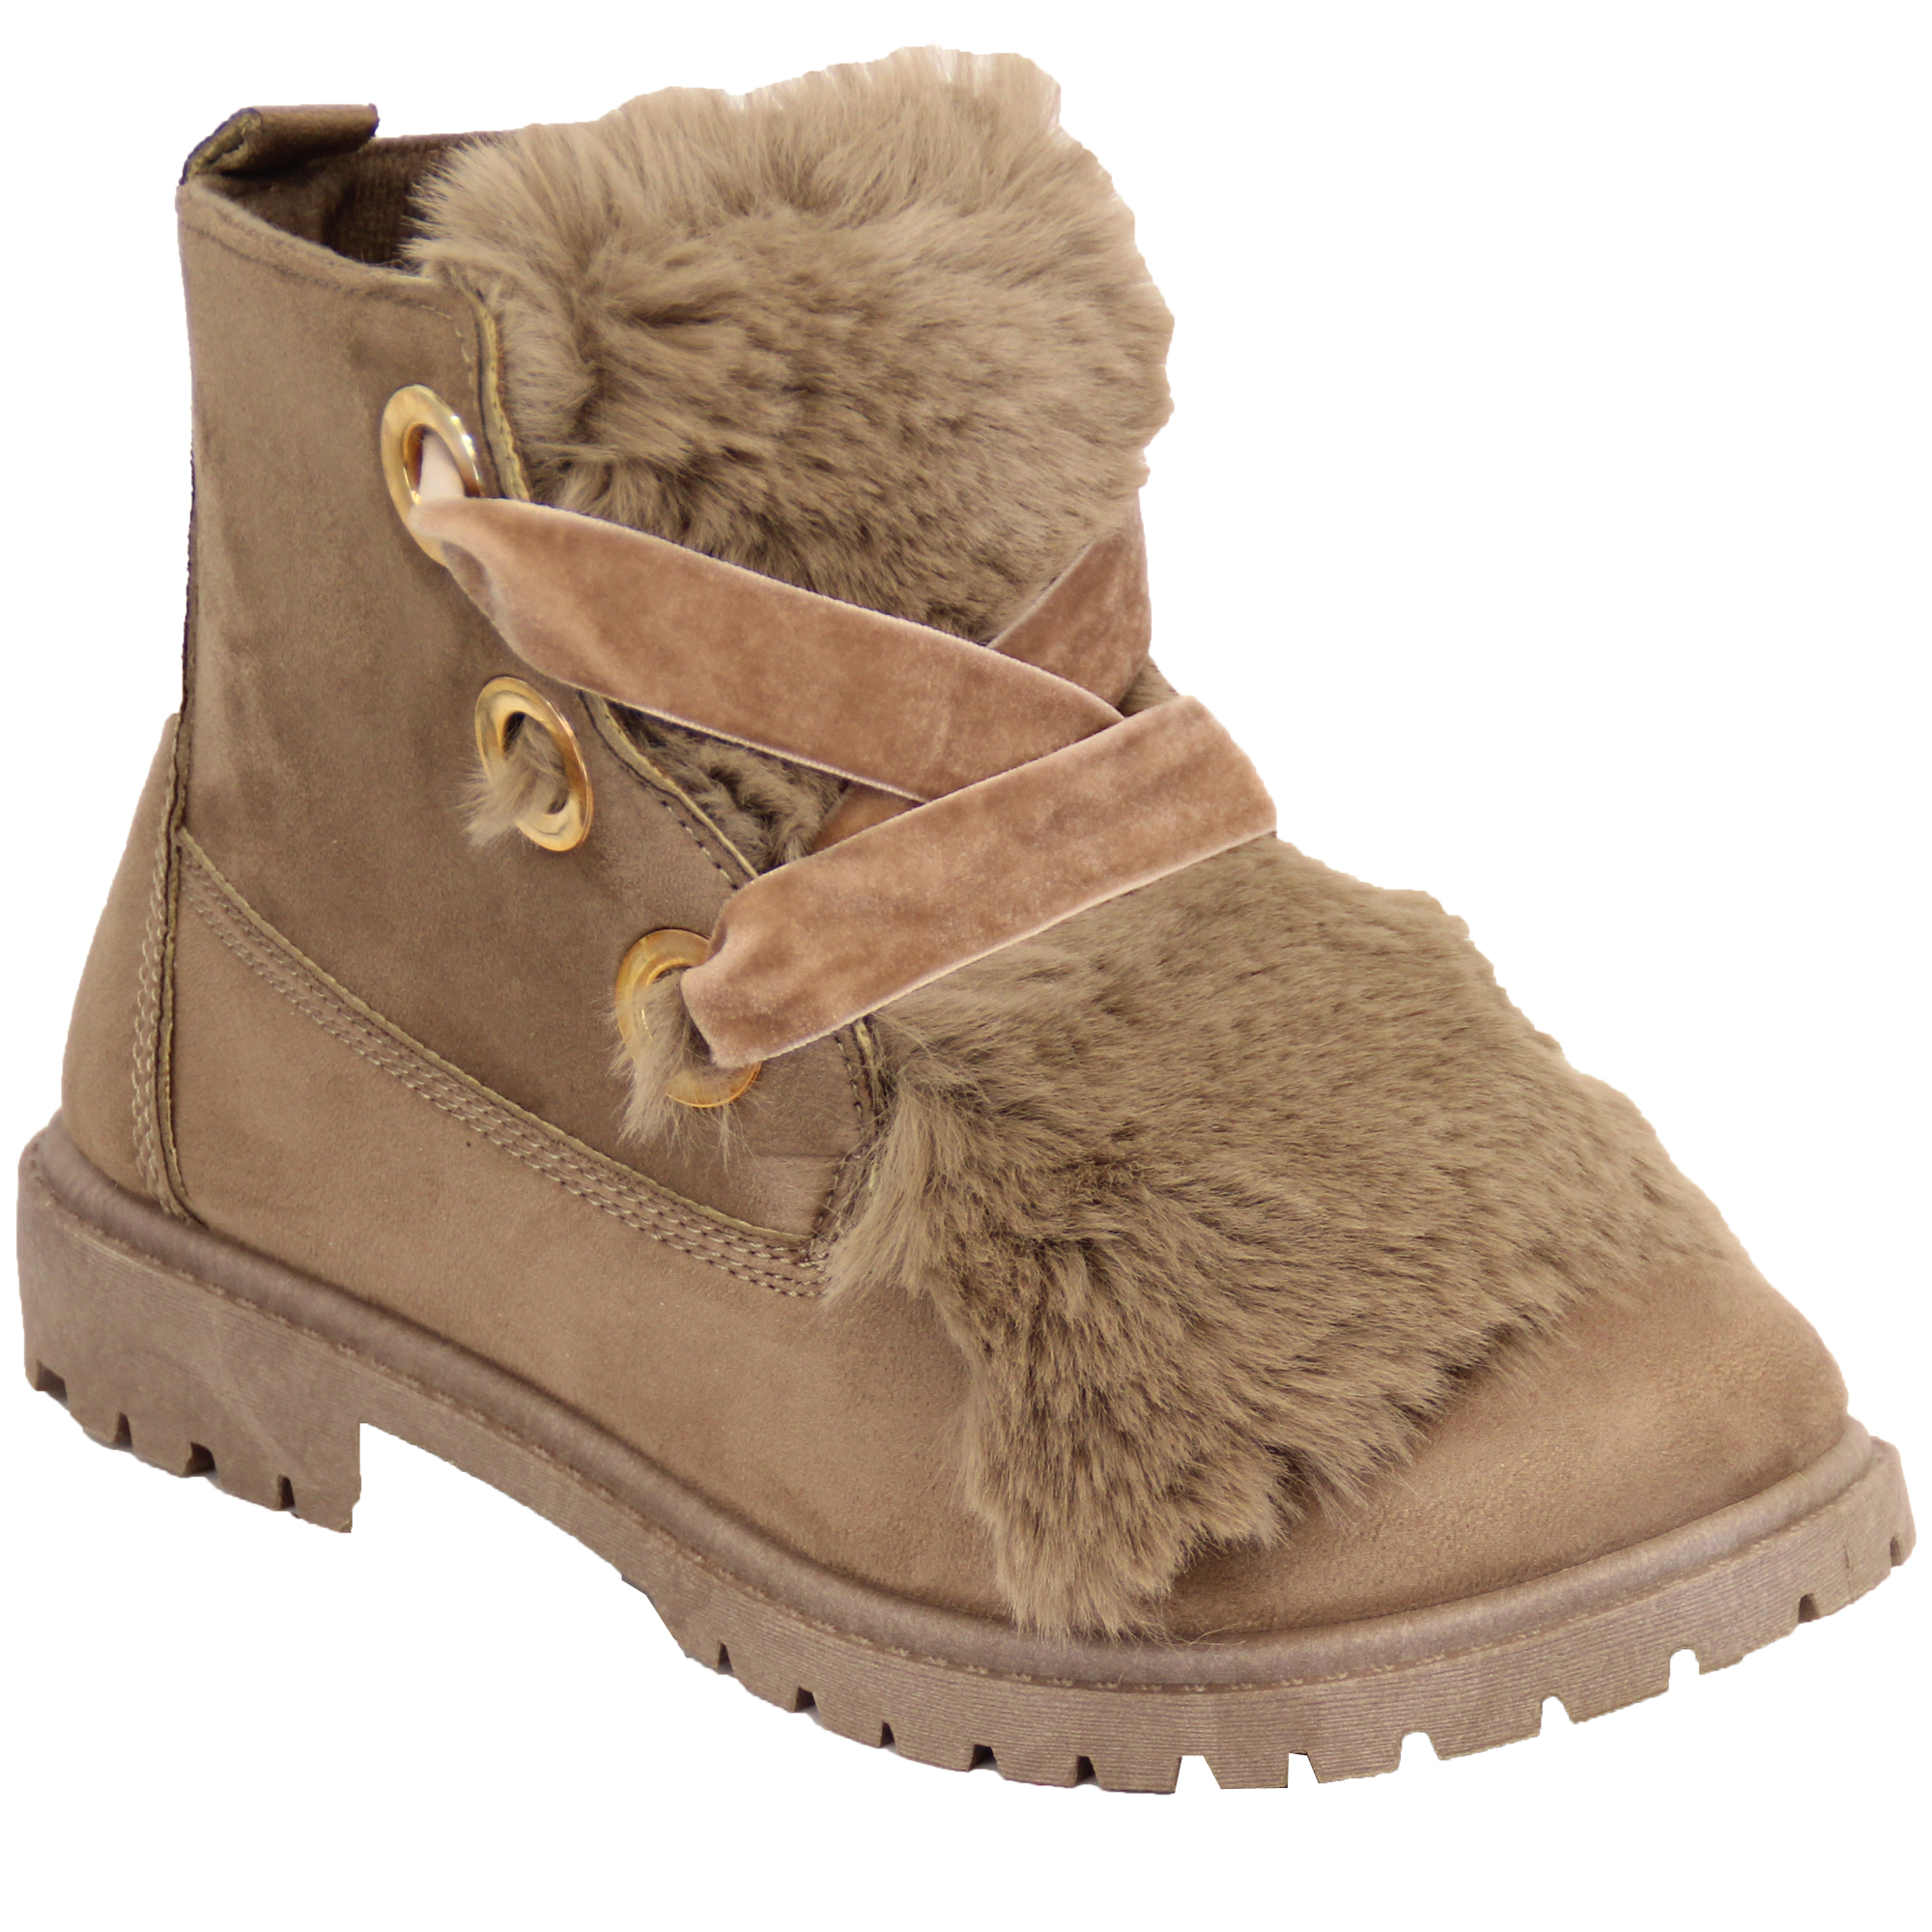 Ladies Suede Look Boots Womens Fluffy Fur Low Heel Lace Up Ankle Shoes Winter